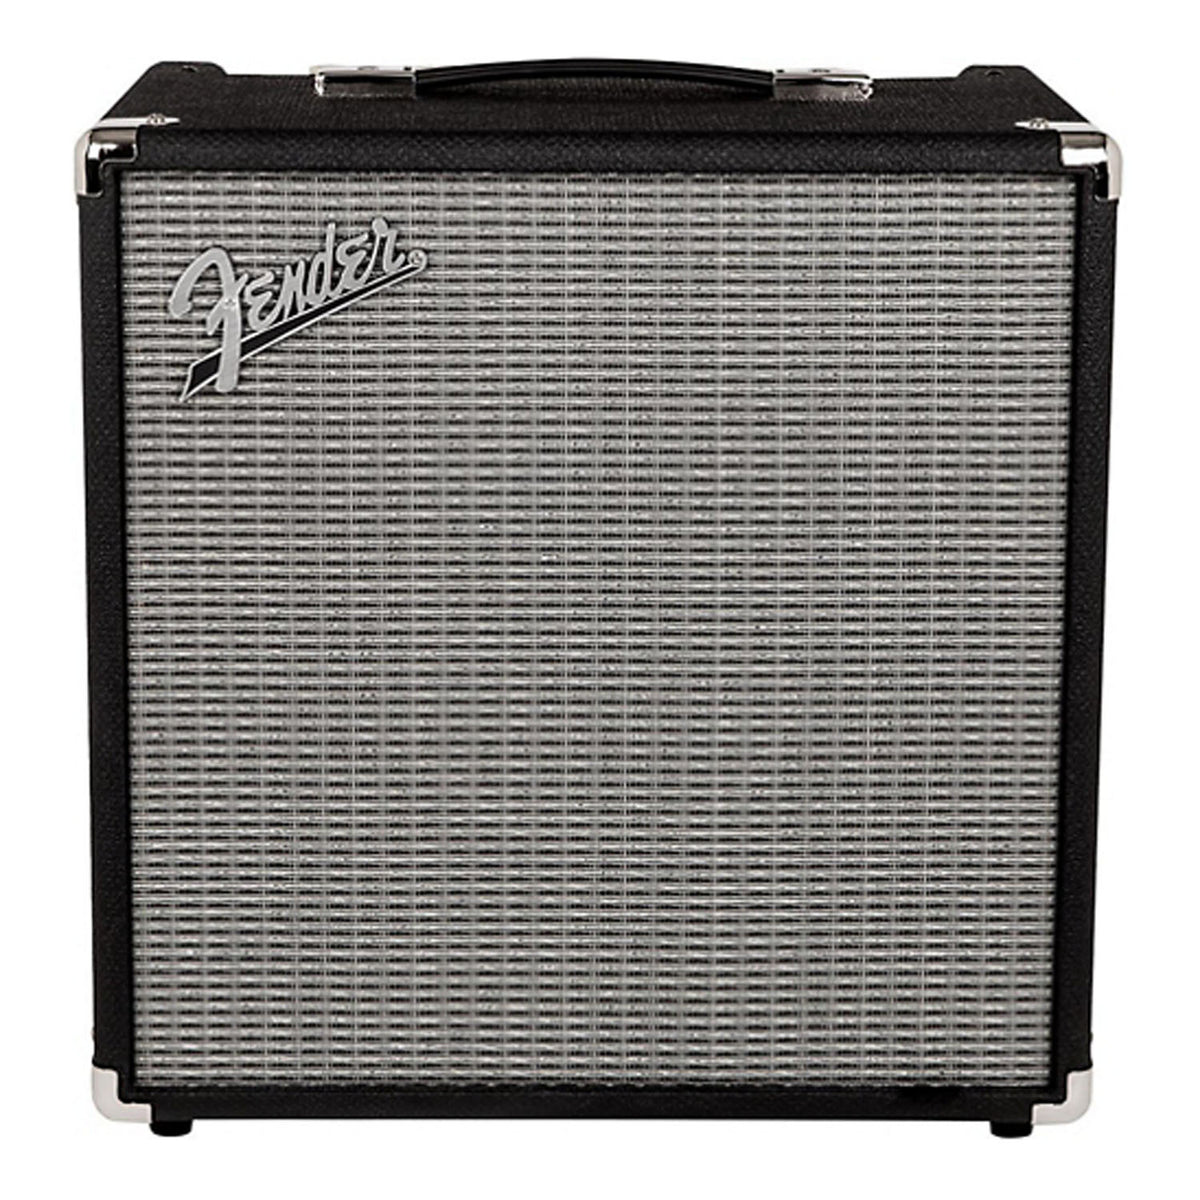 Fender Amp Bass Rumble 40 Black 40W 1X10 - Garrett Park Guitars  - 2